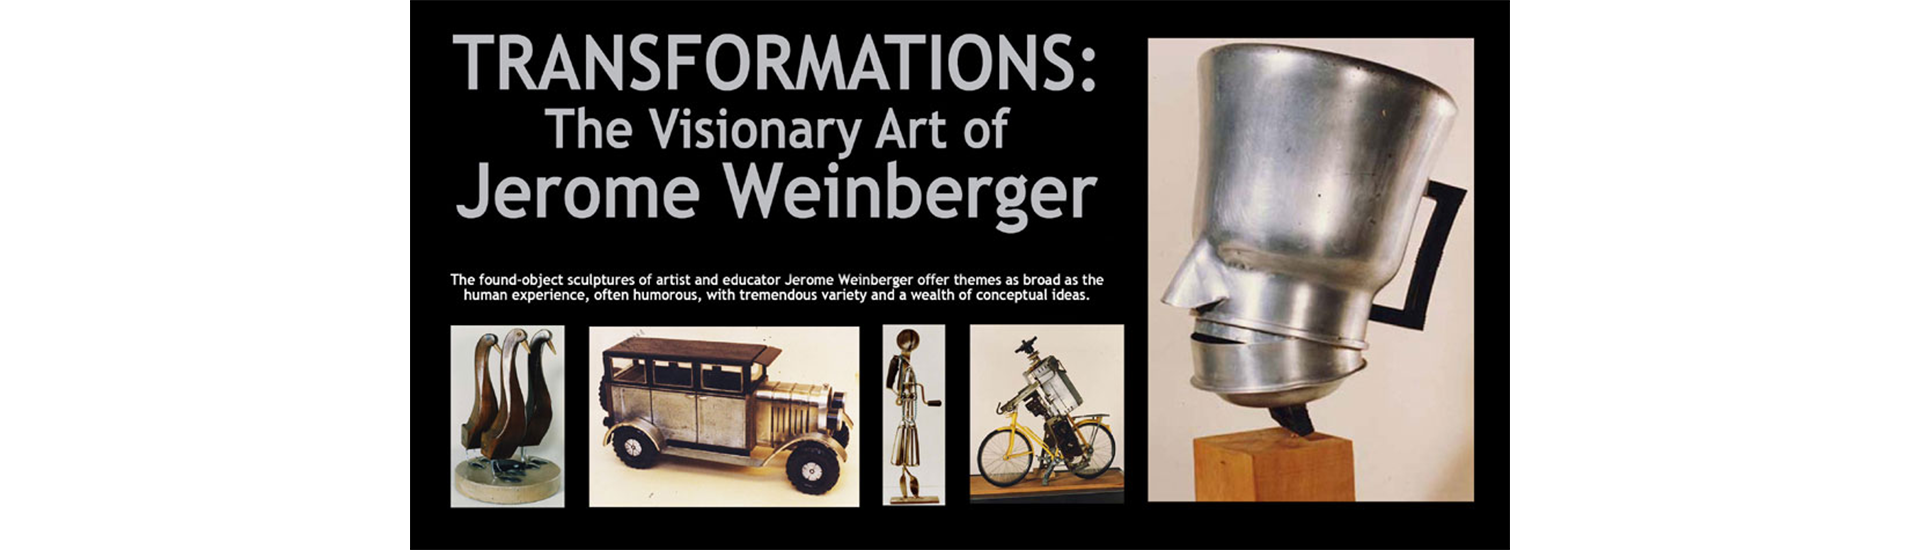 The visionary art of Jerome Weinberger